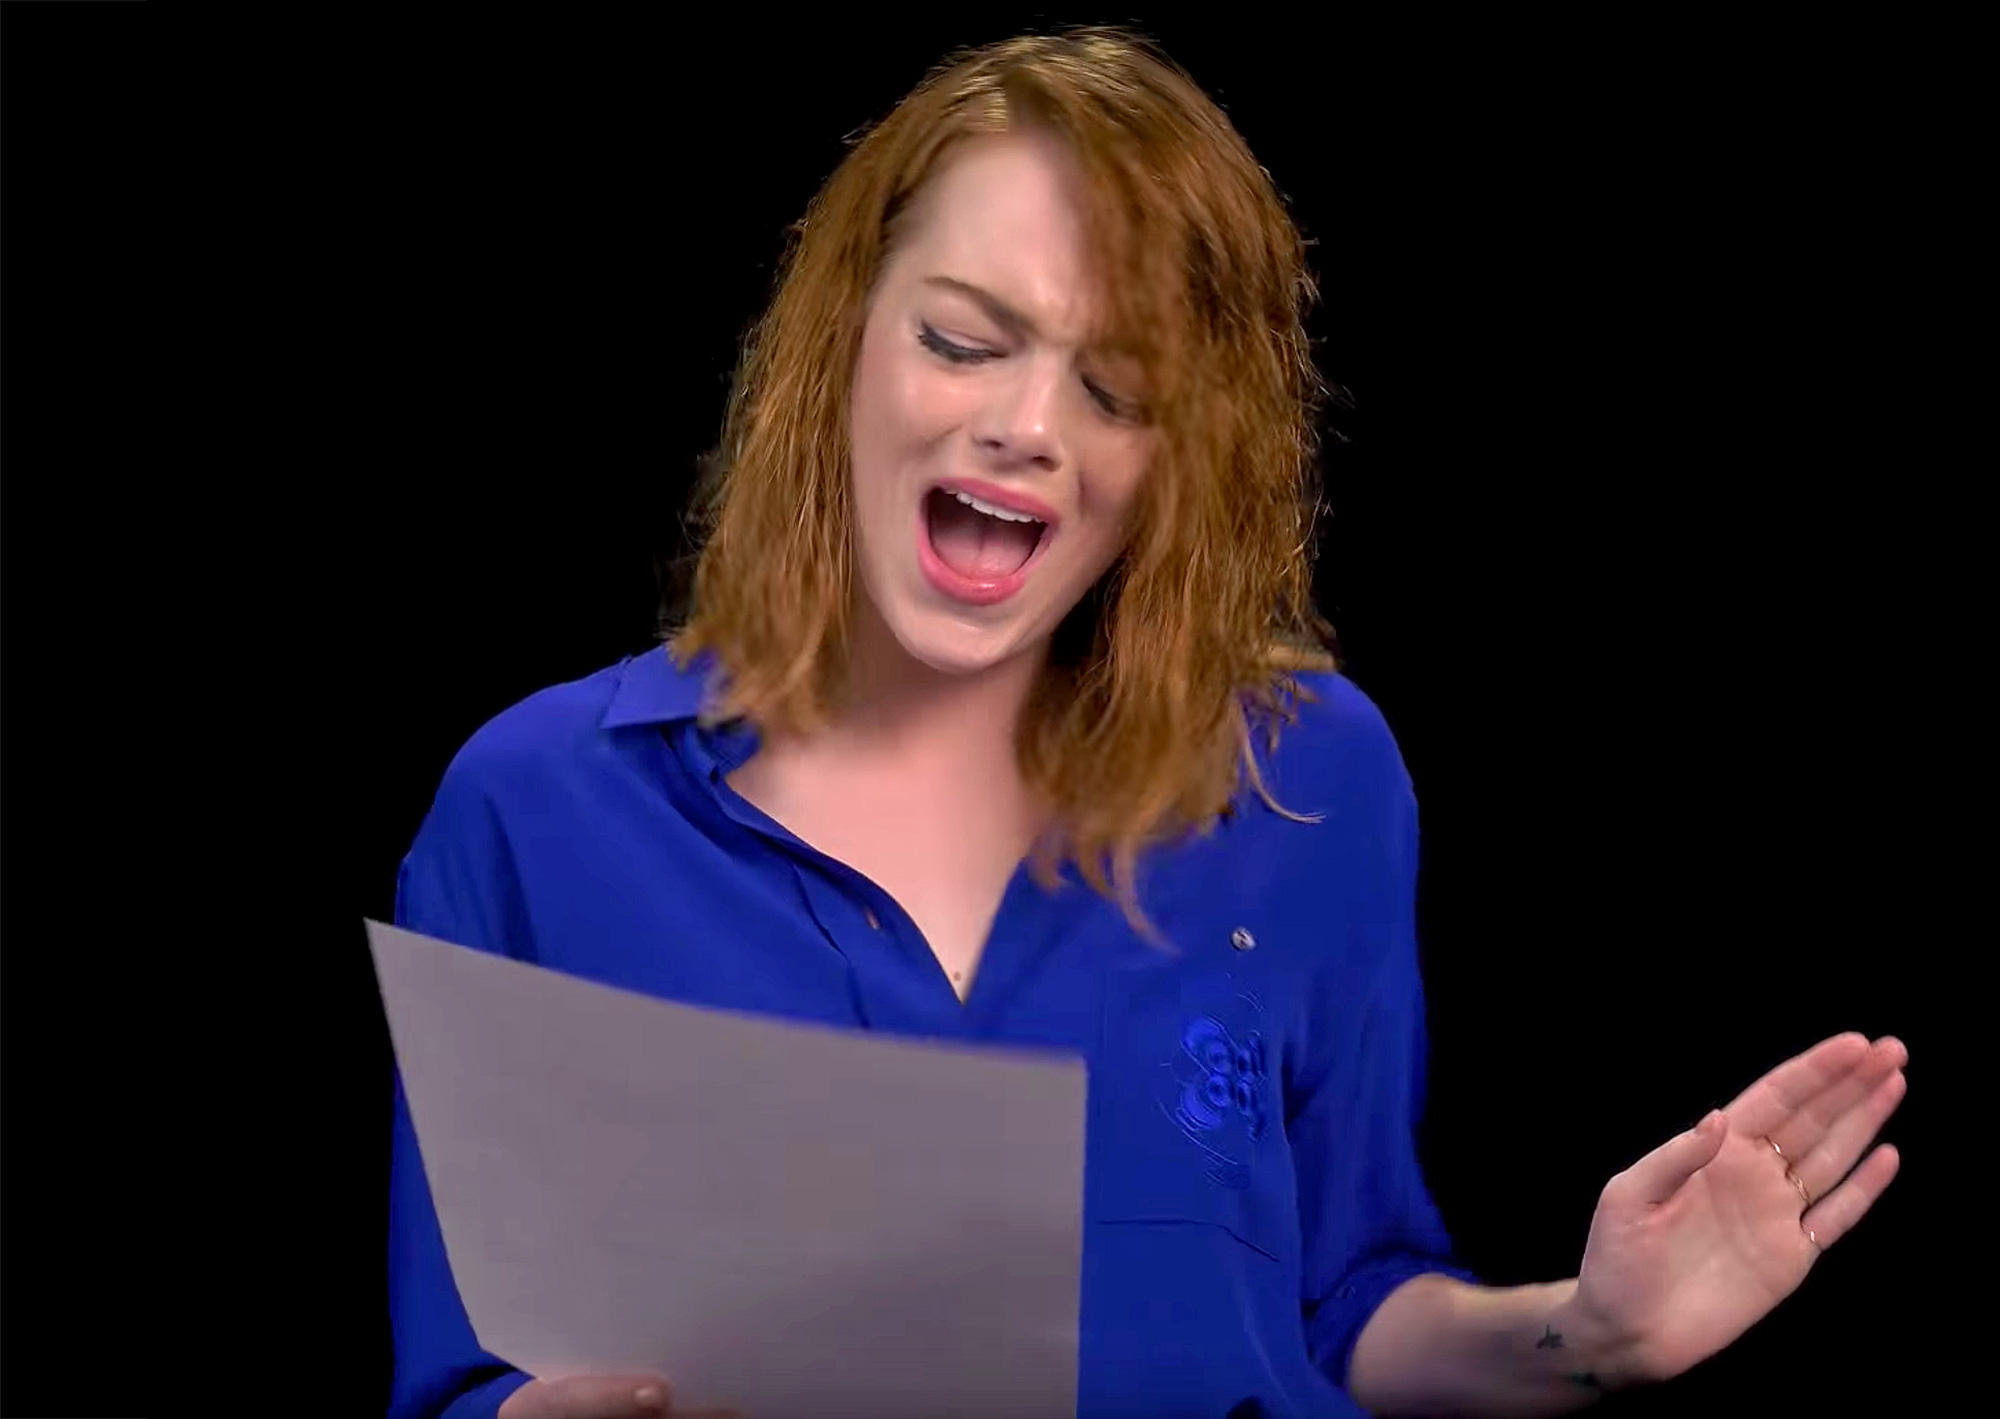 Emma Stone, Natalie Portman, Amy Adams and More Sing 'I Will Survive' Ahead of Donald Trump's Inauguration